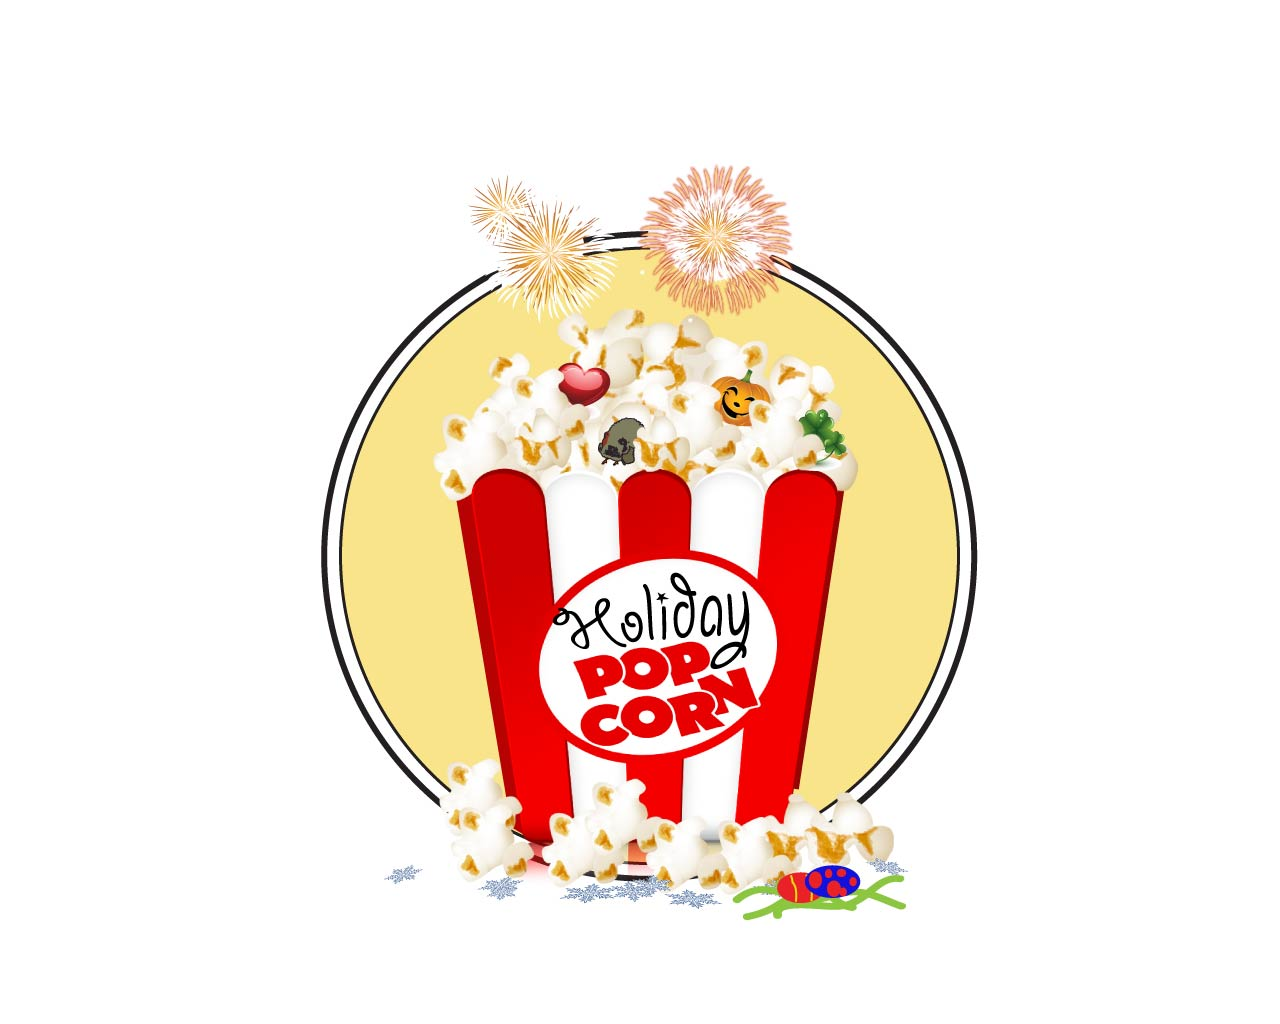 Logo Design by Saunter - Entry No. 13 in the Logo Design Contest Holiday Popcorn.